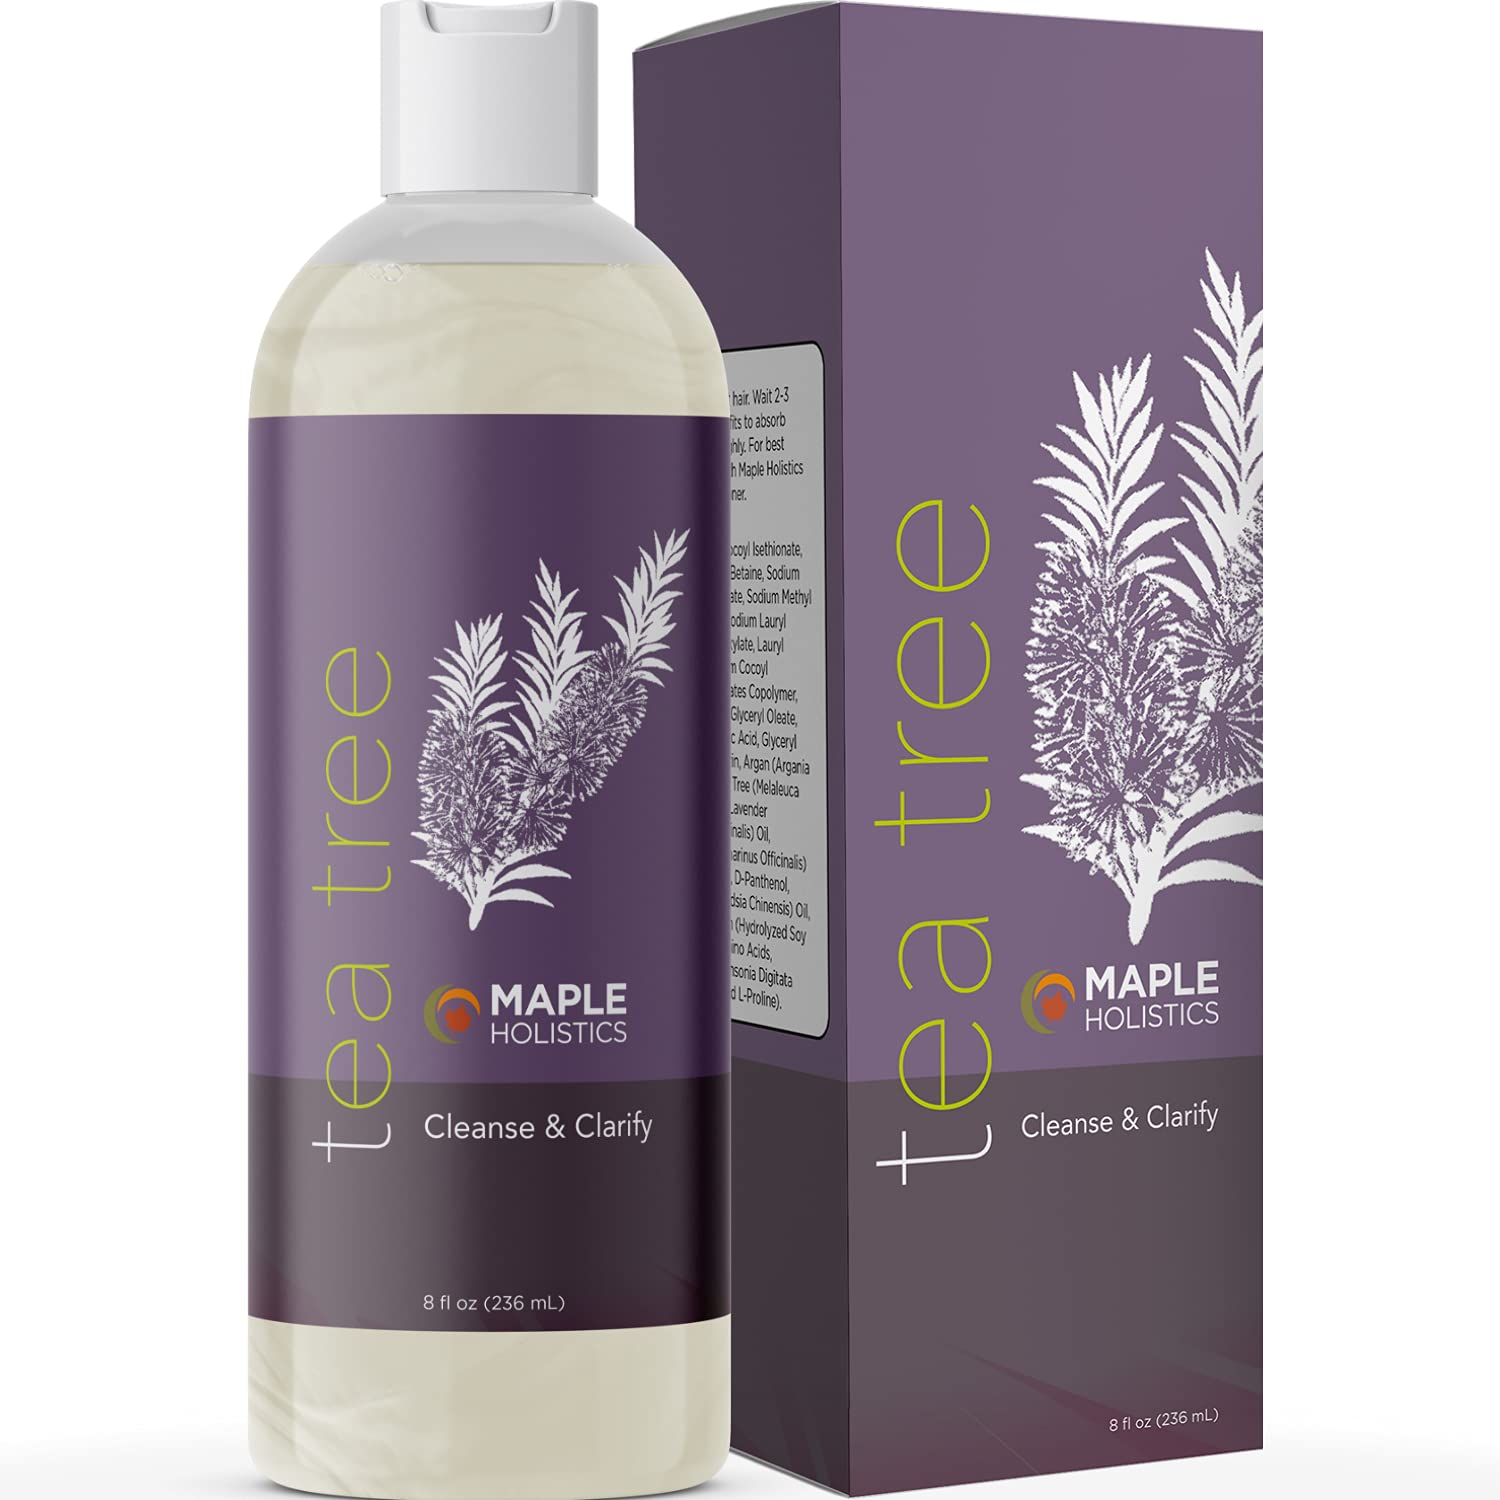 Maple Holistics - Tea Tree Shampoo, 8 oz. (236 ml)